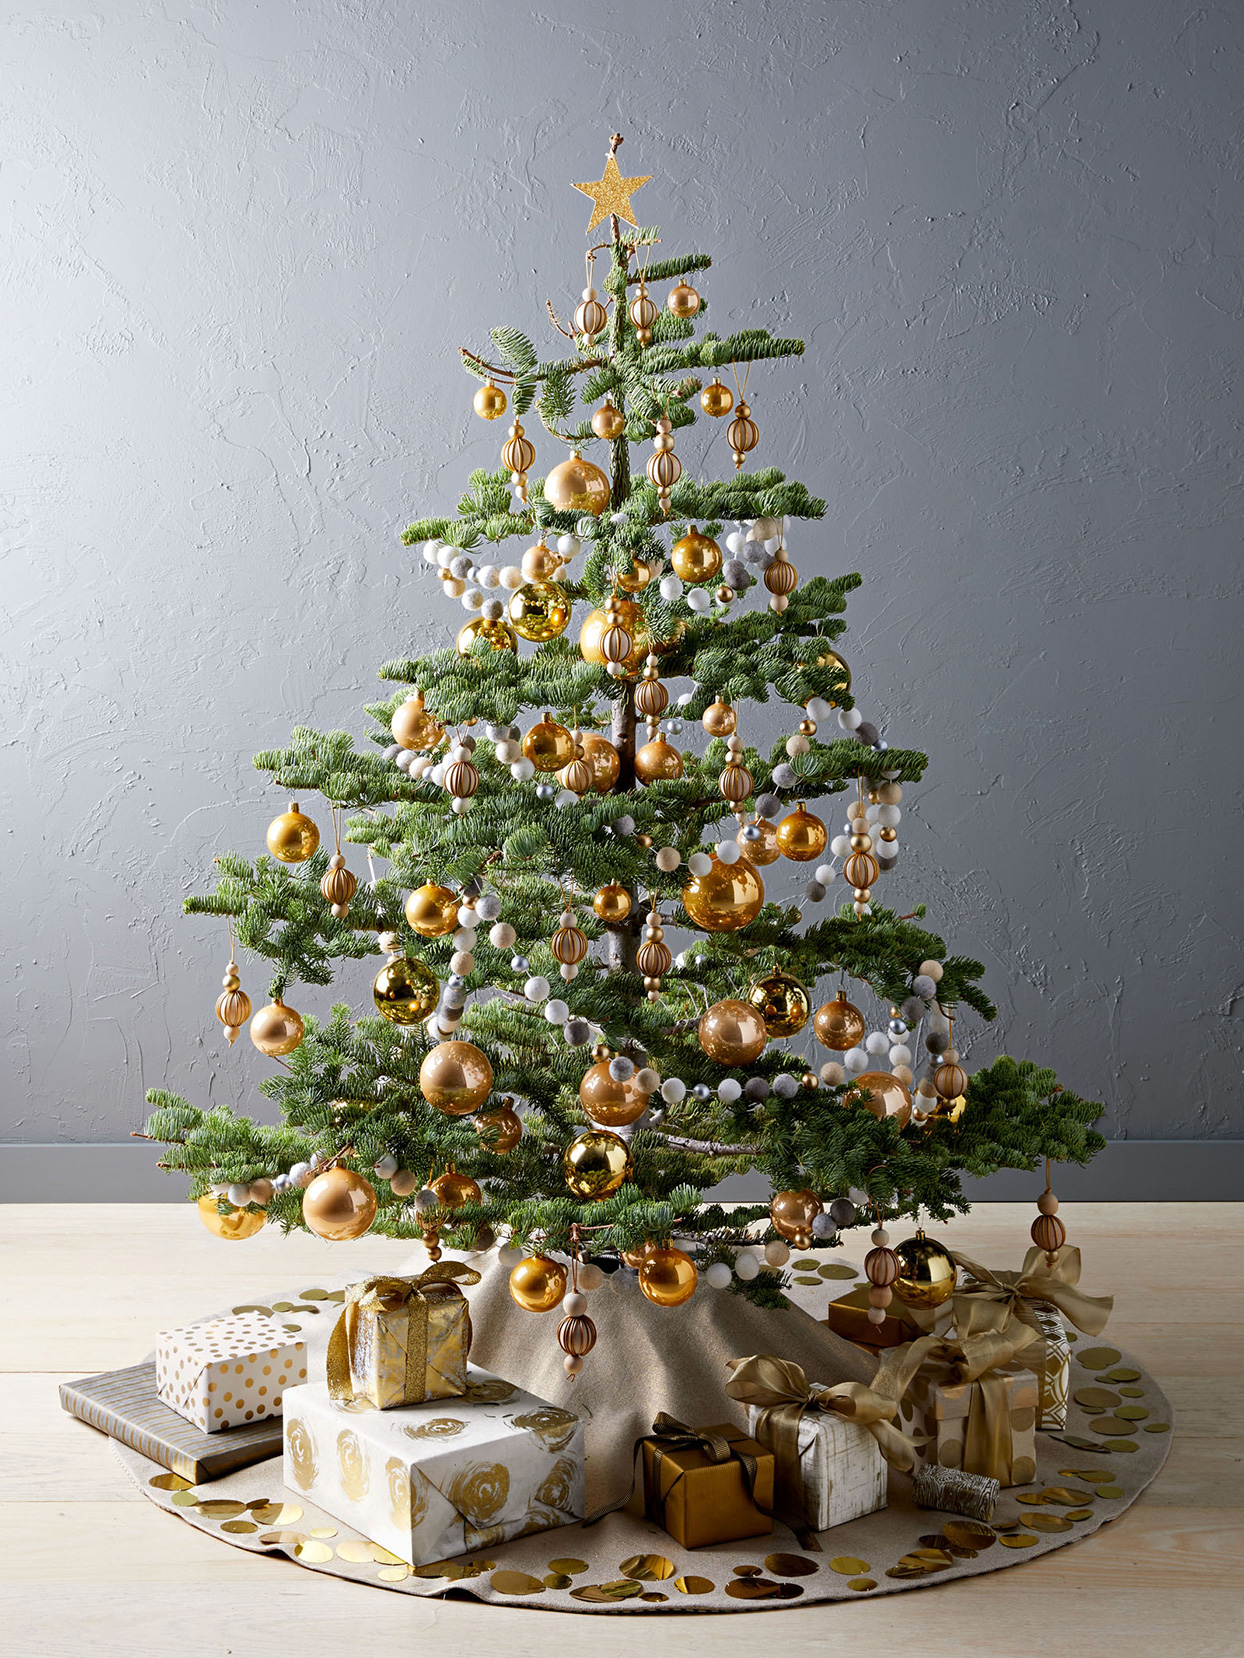 christmas tree decorated with golden ornaments